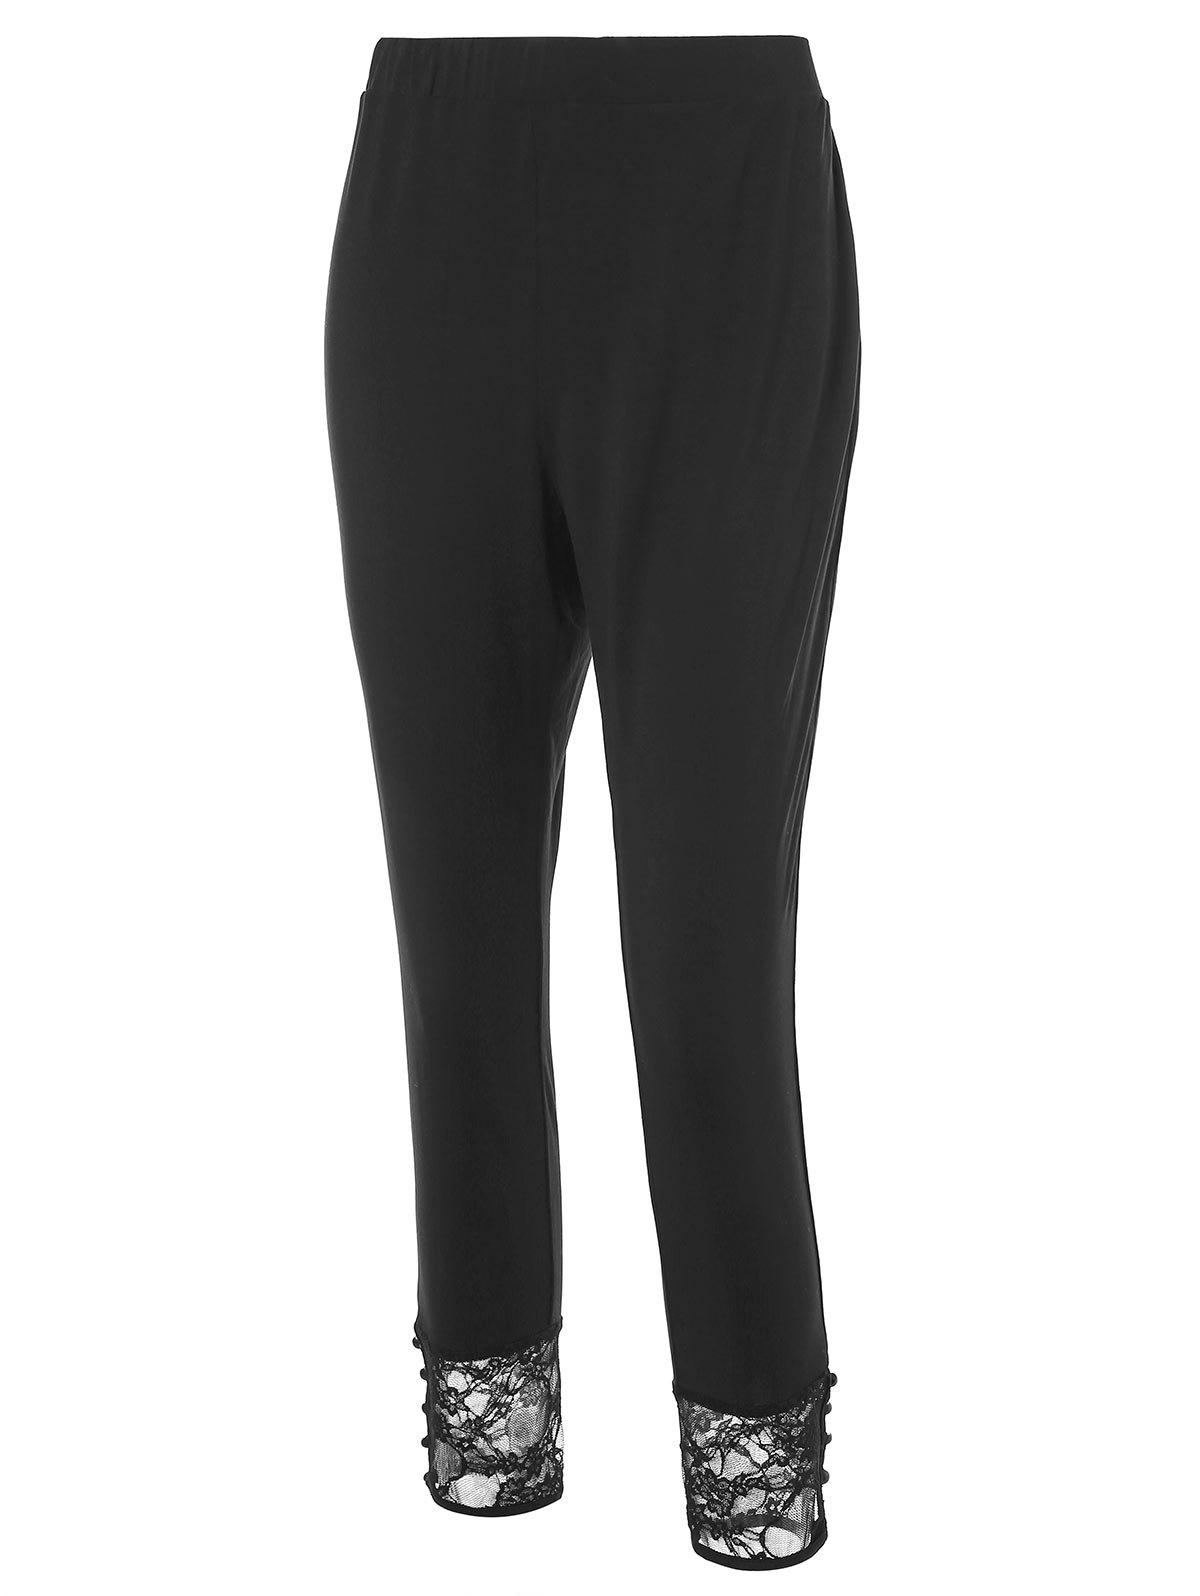 Discount Plus Size High Waisted Leggings with Lace